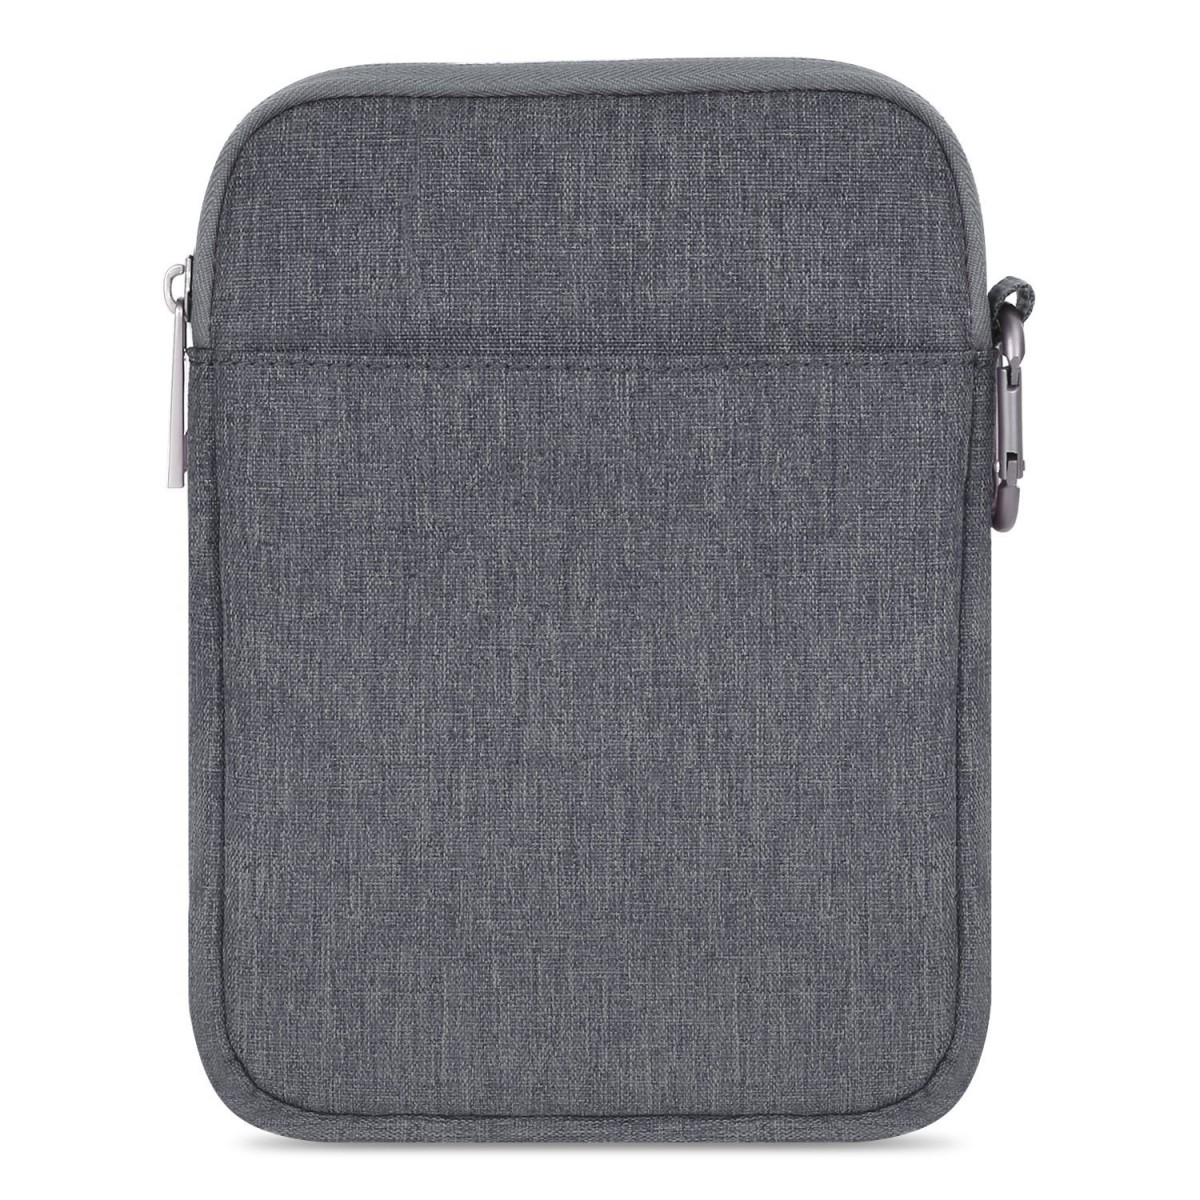 MoKo Sleeve for Kindle Paperwhite / Kindle Voyage, 6-Inch Nylon Cover Pouch  Bag for Amazon Kindle Paperwhite / Voyage / All-New Kindle(8th Generation,